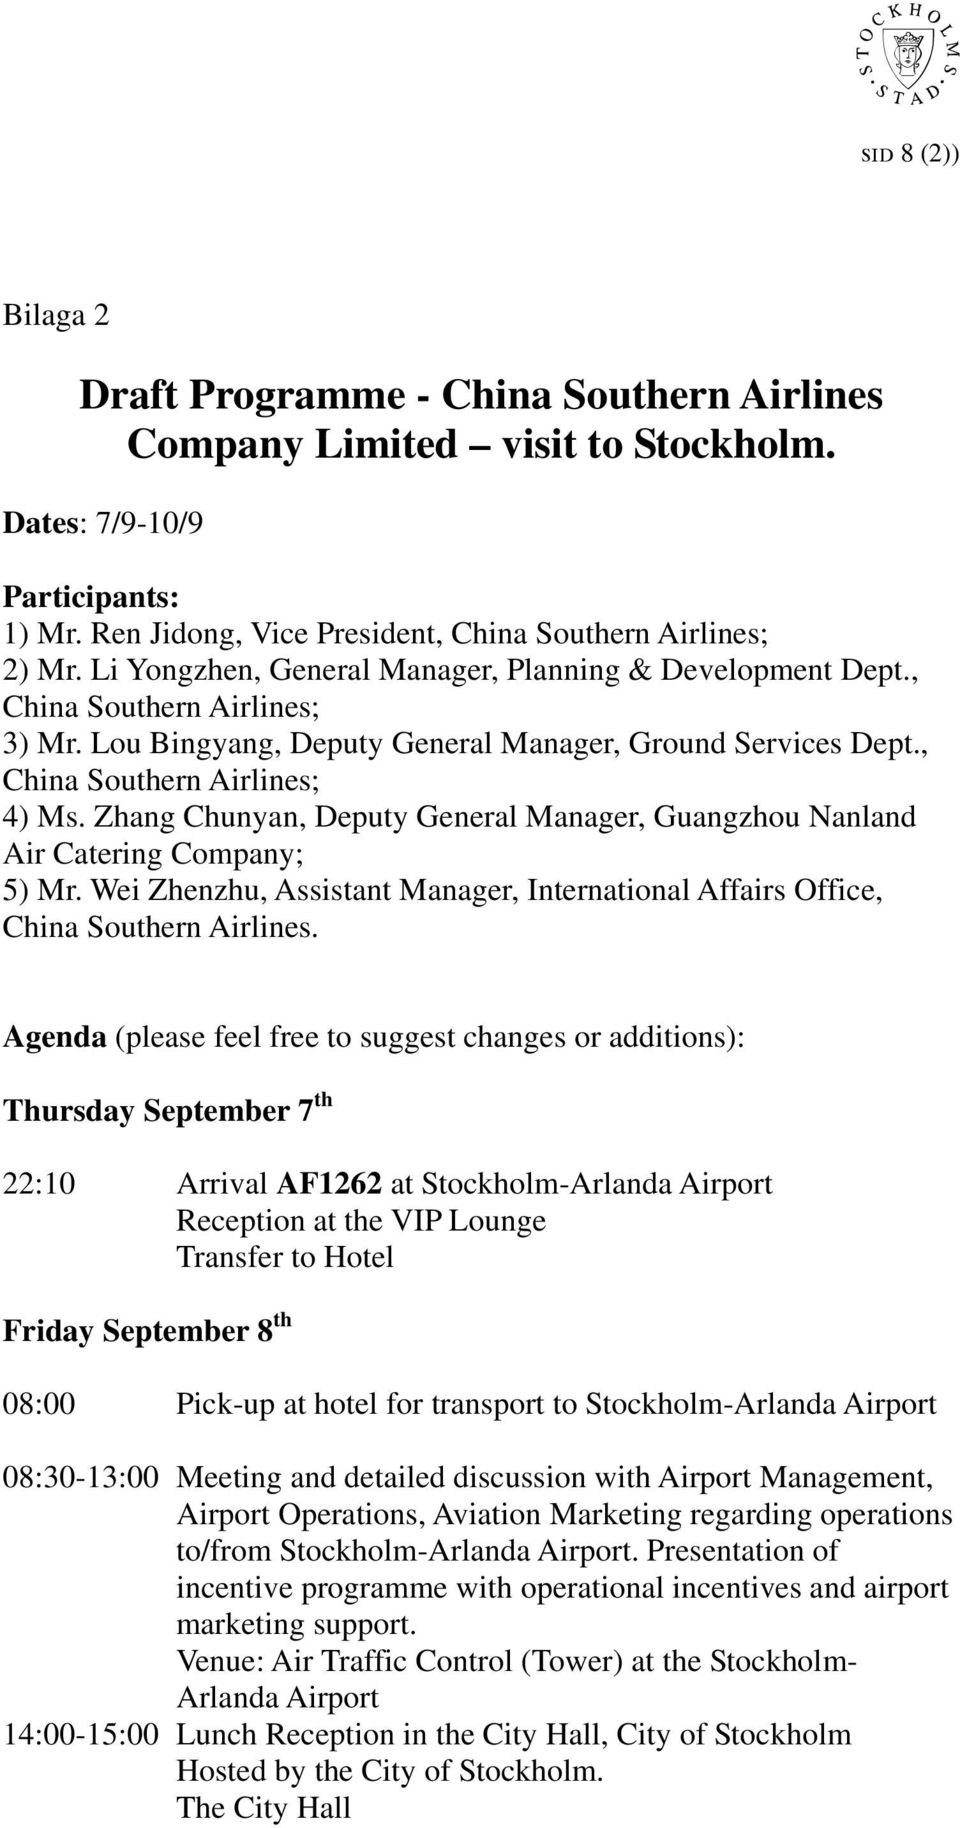 Zhang Chunyan, Deputy General Manager, Guangzhou Nanland Air Catering Company; 5) Mr. Wei Zhenzhu, Assistant Manager, International Affairs Office, China Southern Airlines.